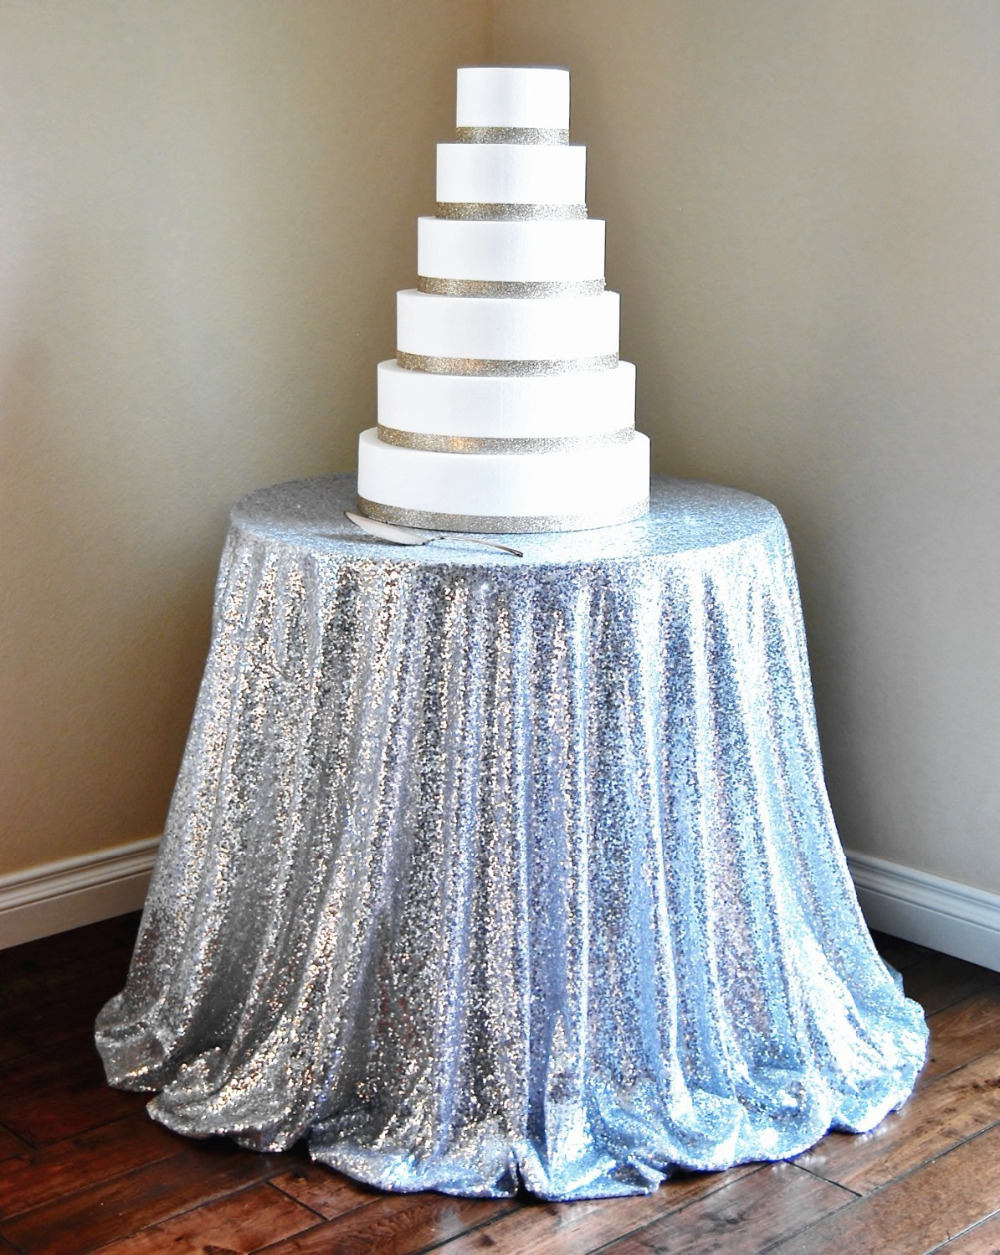 96 inch round tablecloth - 72 Round Silver Sequin Tablecloth Wedding Cake Tablecloth Sequin Table Cloth For Wedding Party